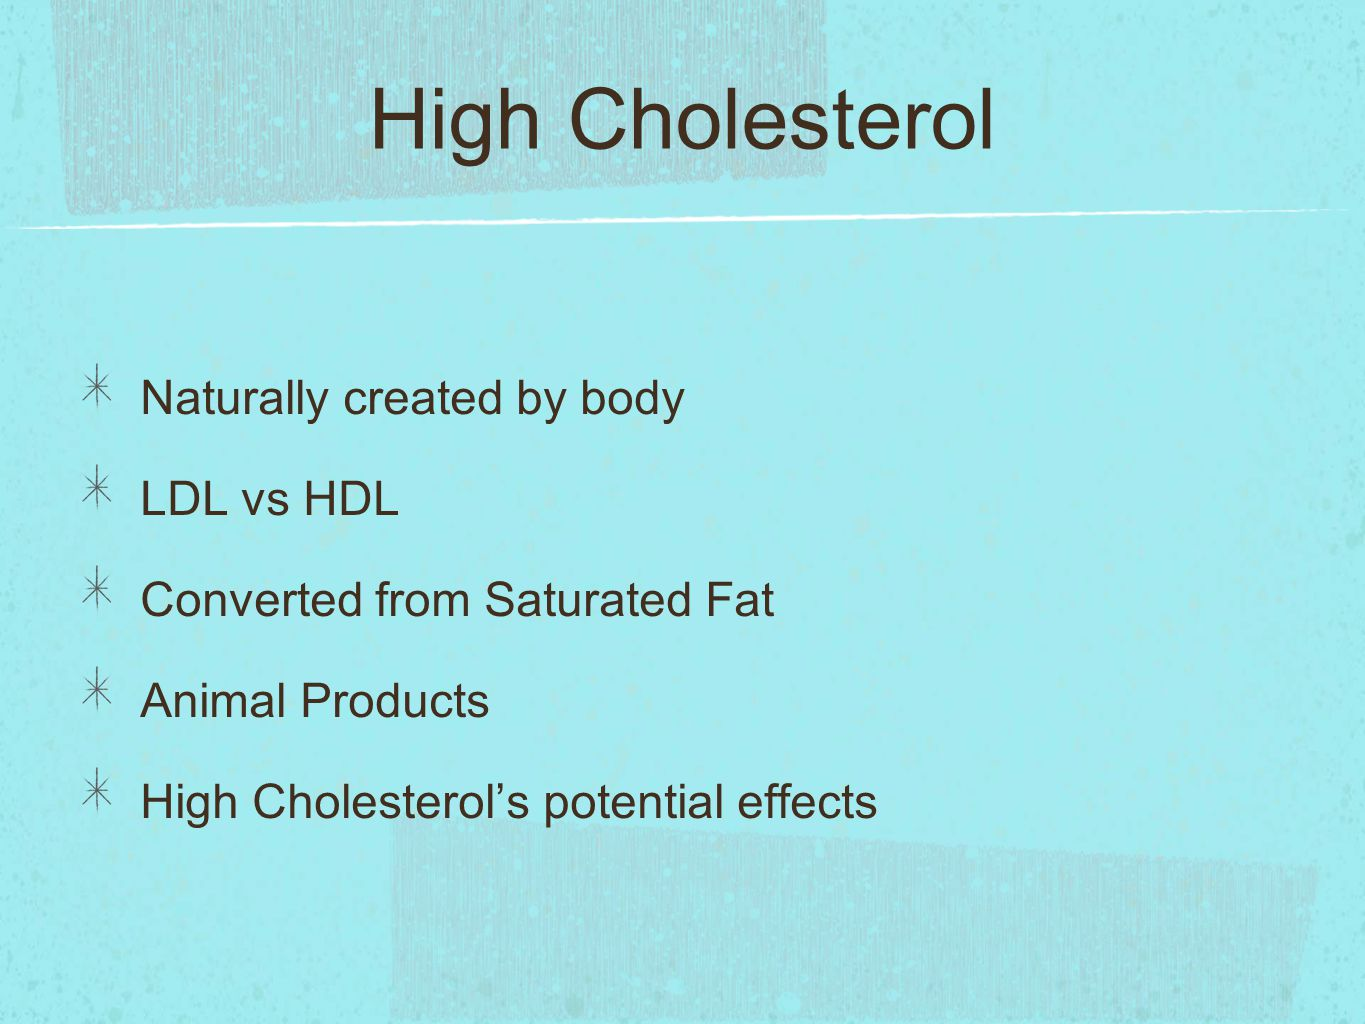 High Cholesterol Naturally created by body LDL vs HDL Converted from Saturated Fat Animal Products High Cholesterol's potential effects